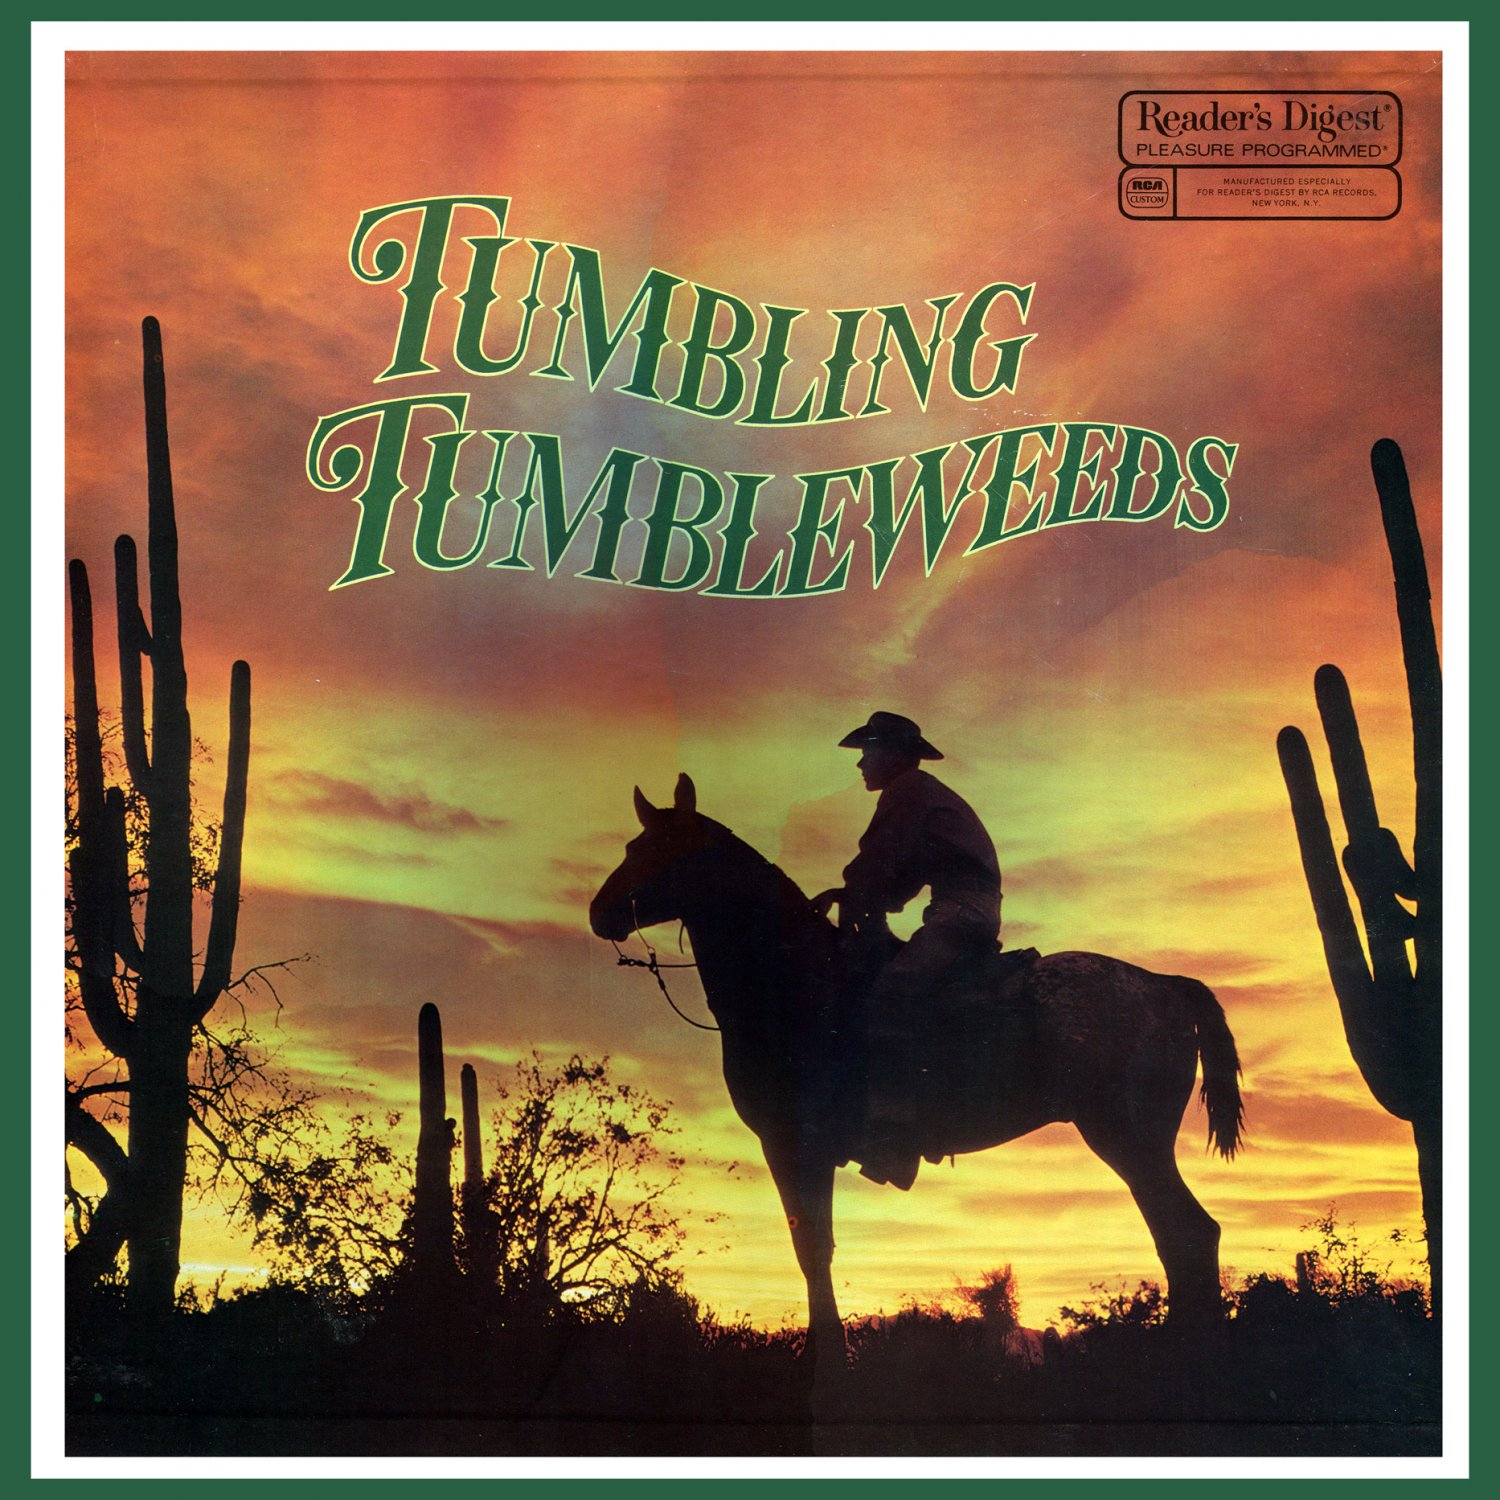 Tumbling Tumbleweeds - Reader's Digest Western Music Collection (Box Set) LP/CD